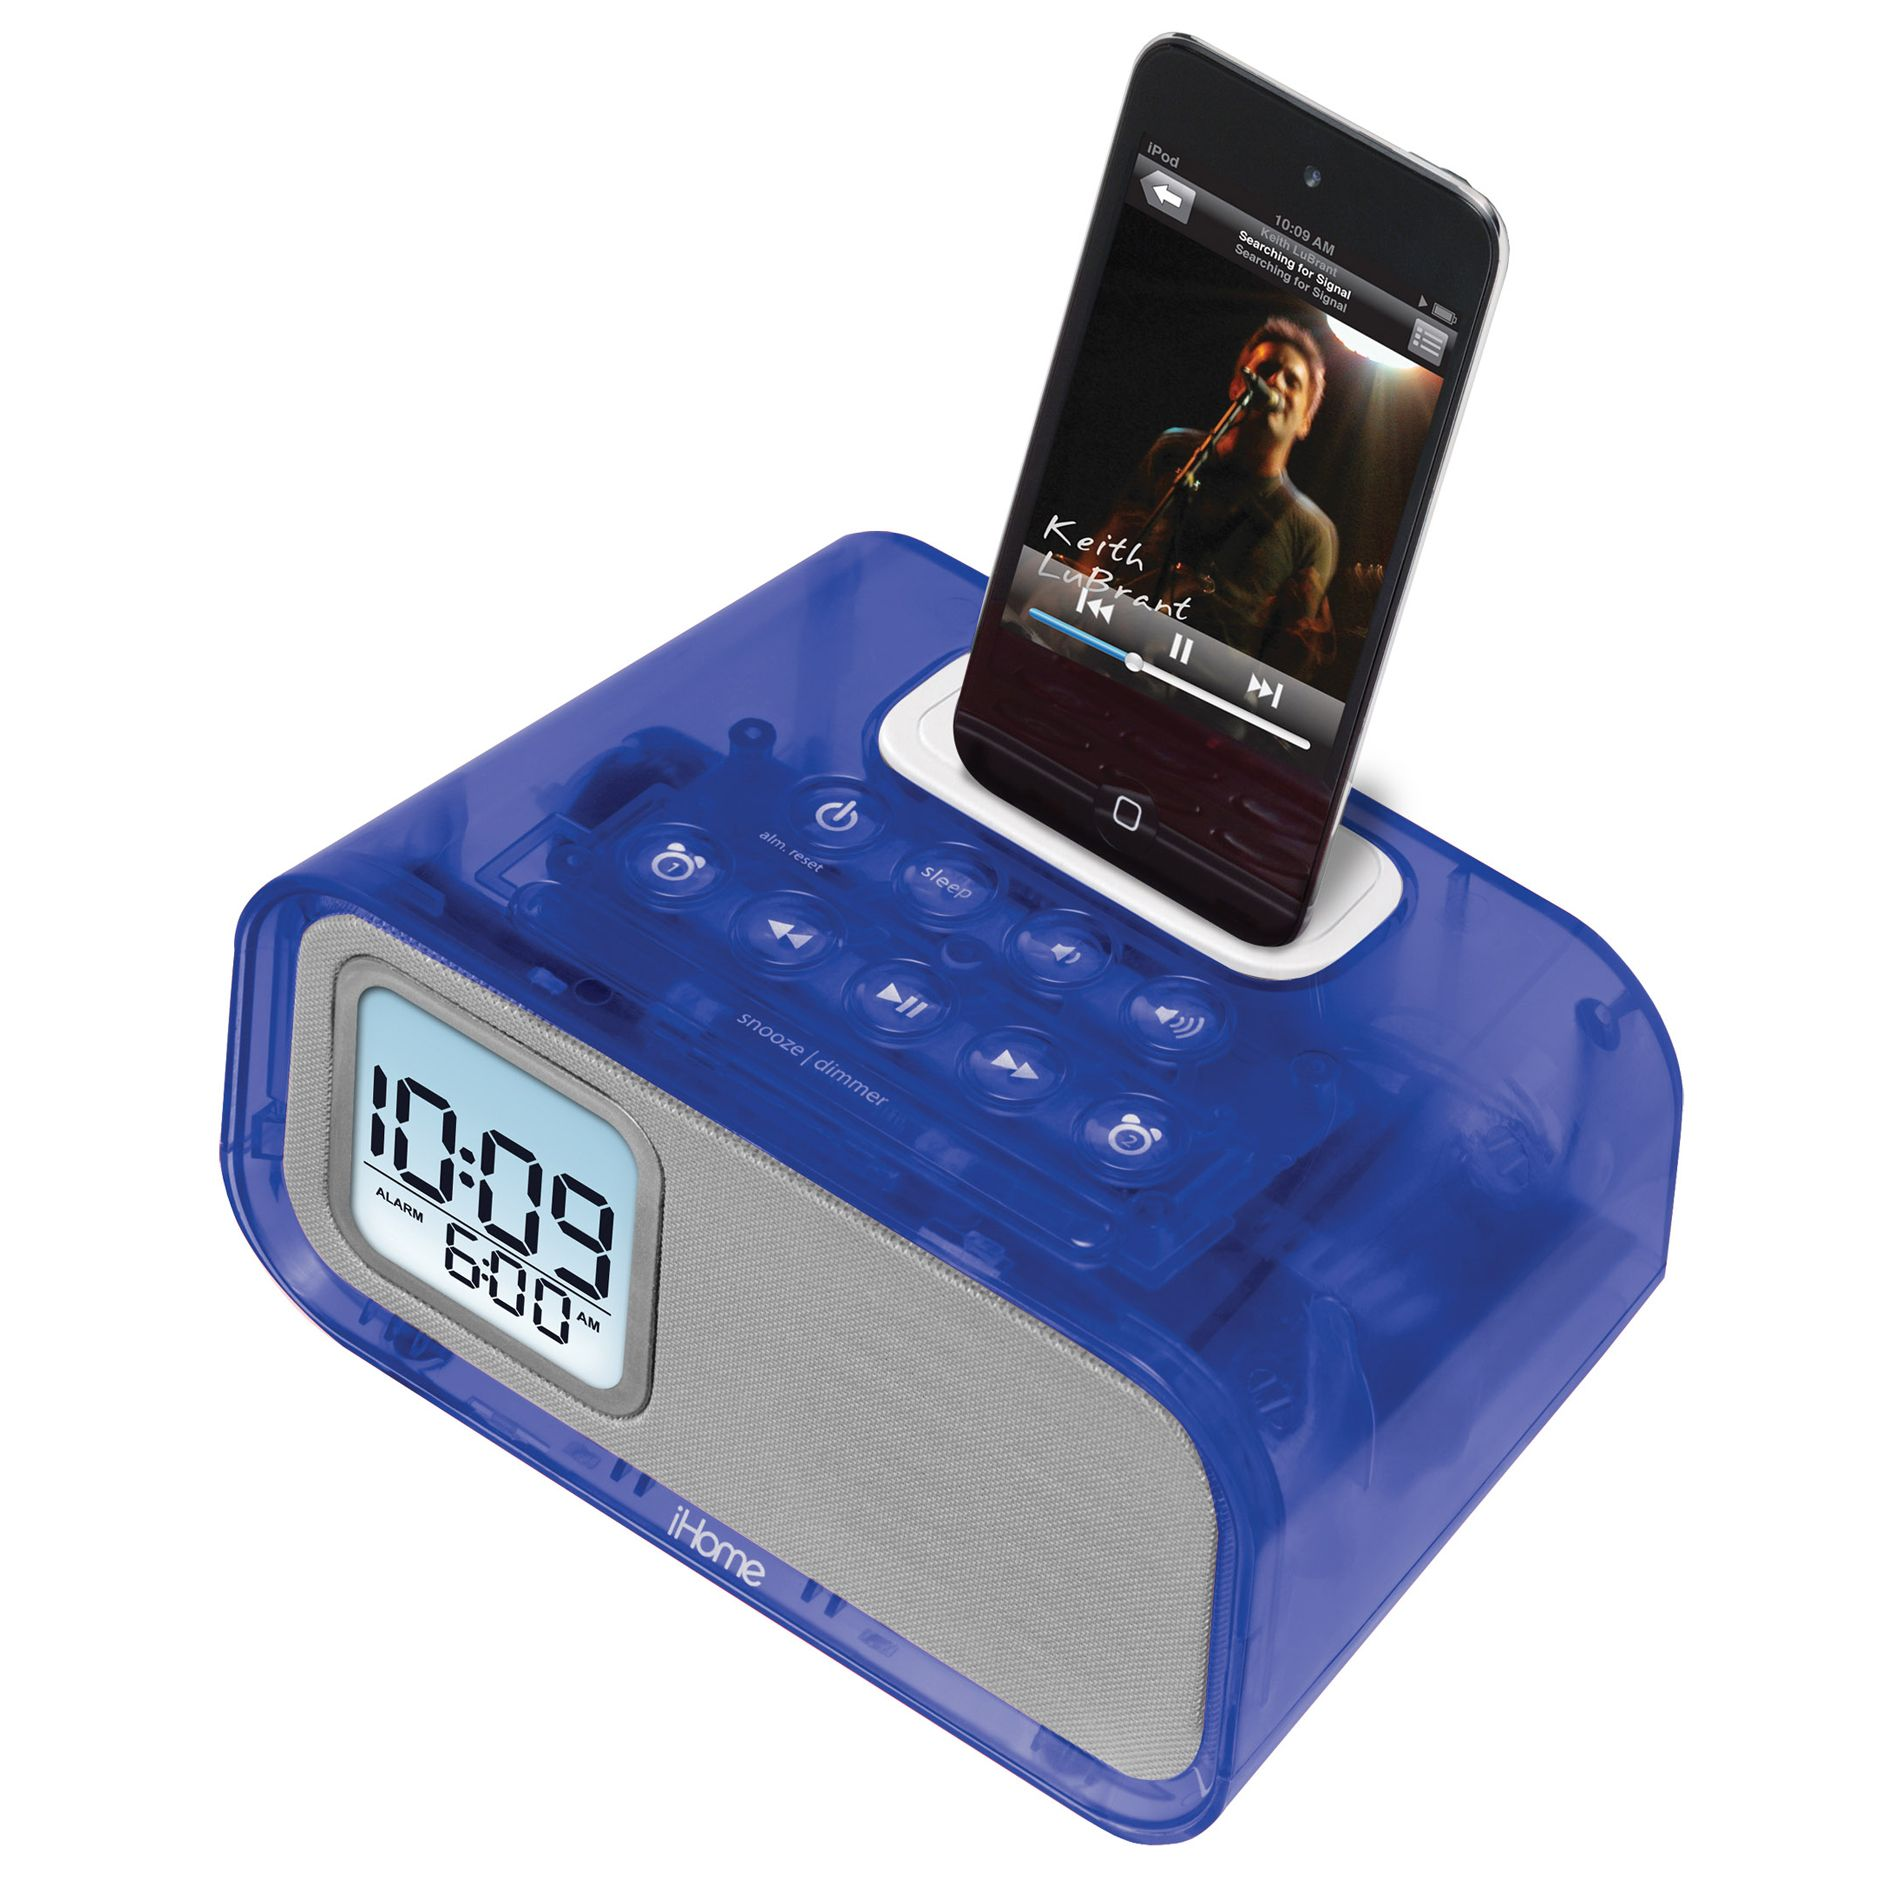 iHOME iH22 Dual Alarm Clock for iPod Blue